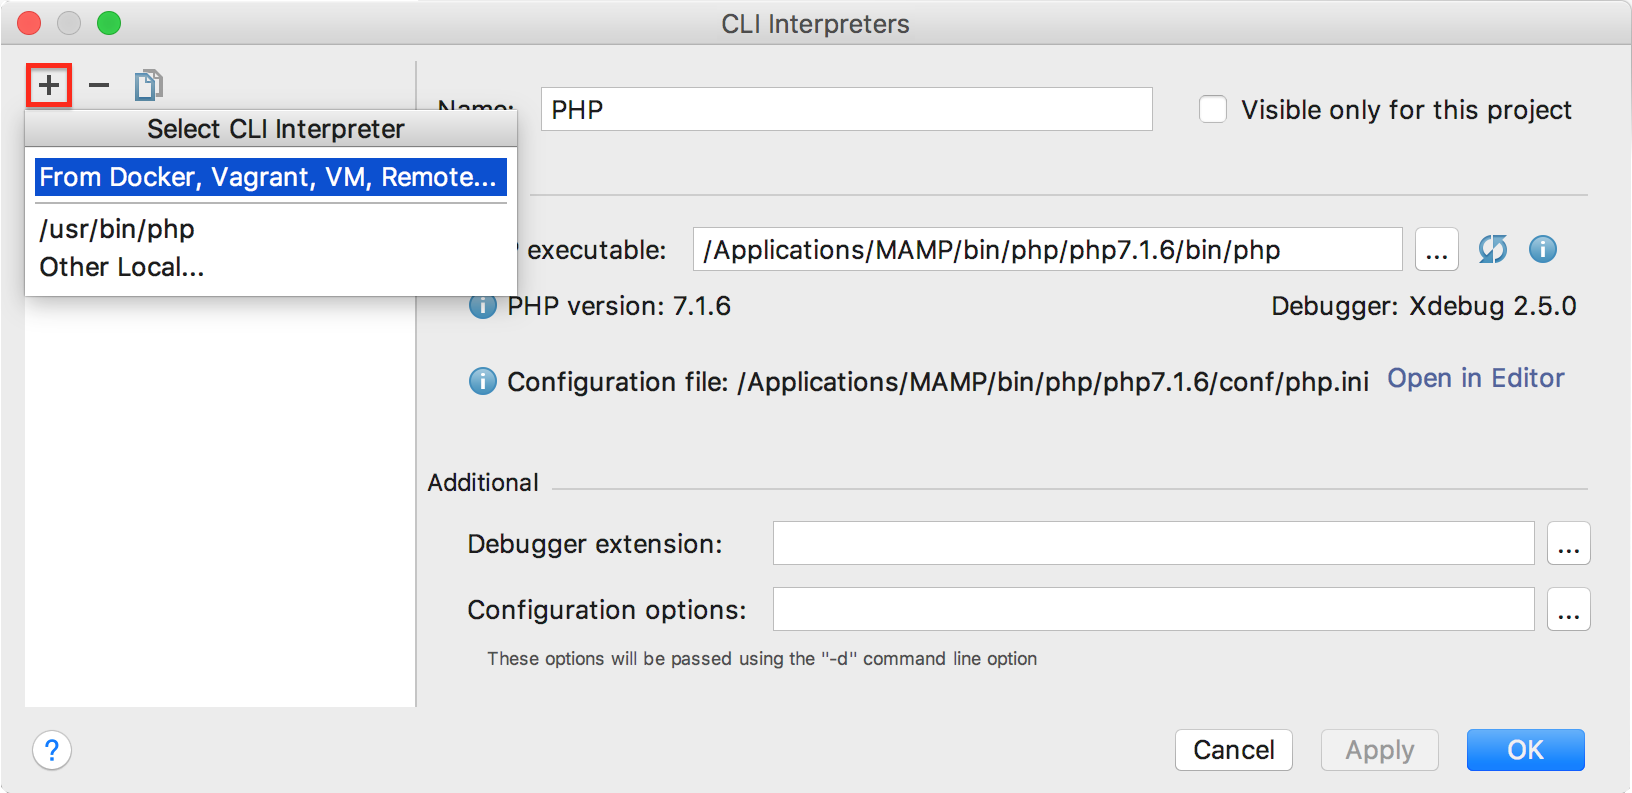 new_cli_interpreter